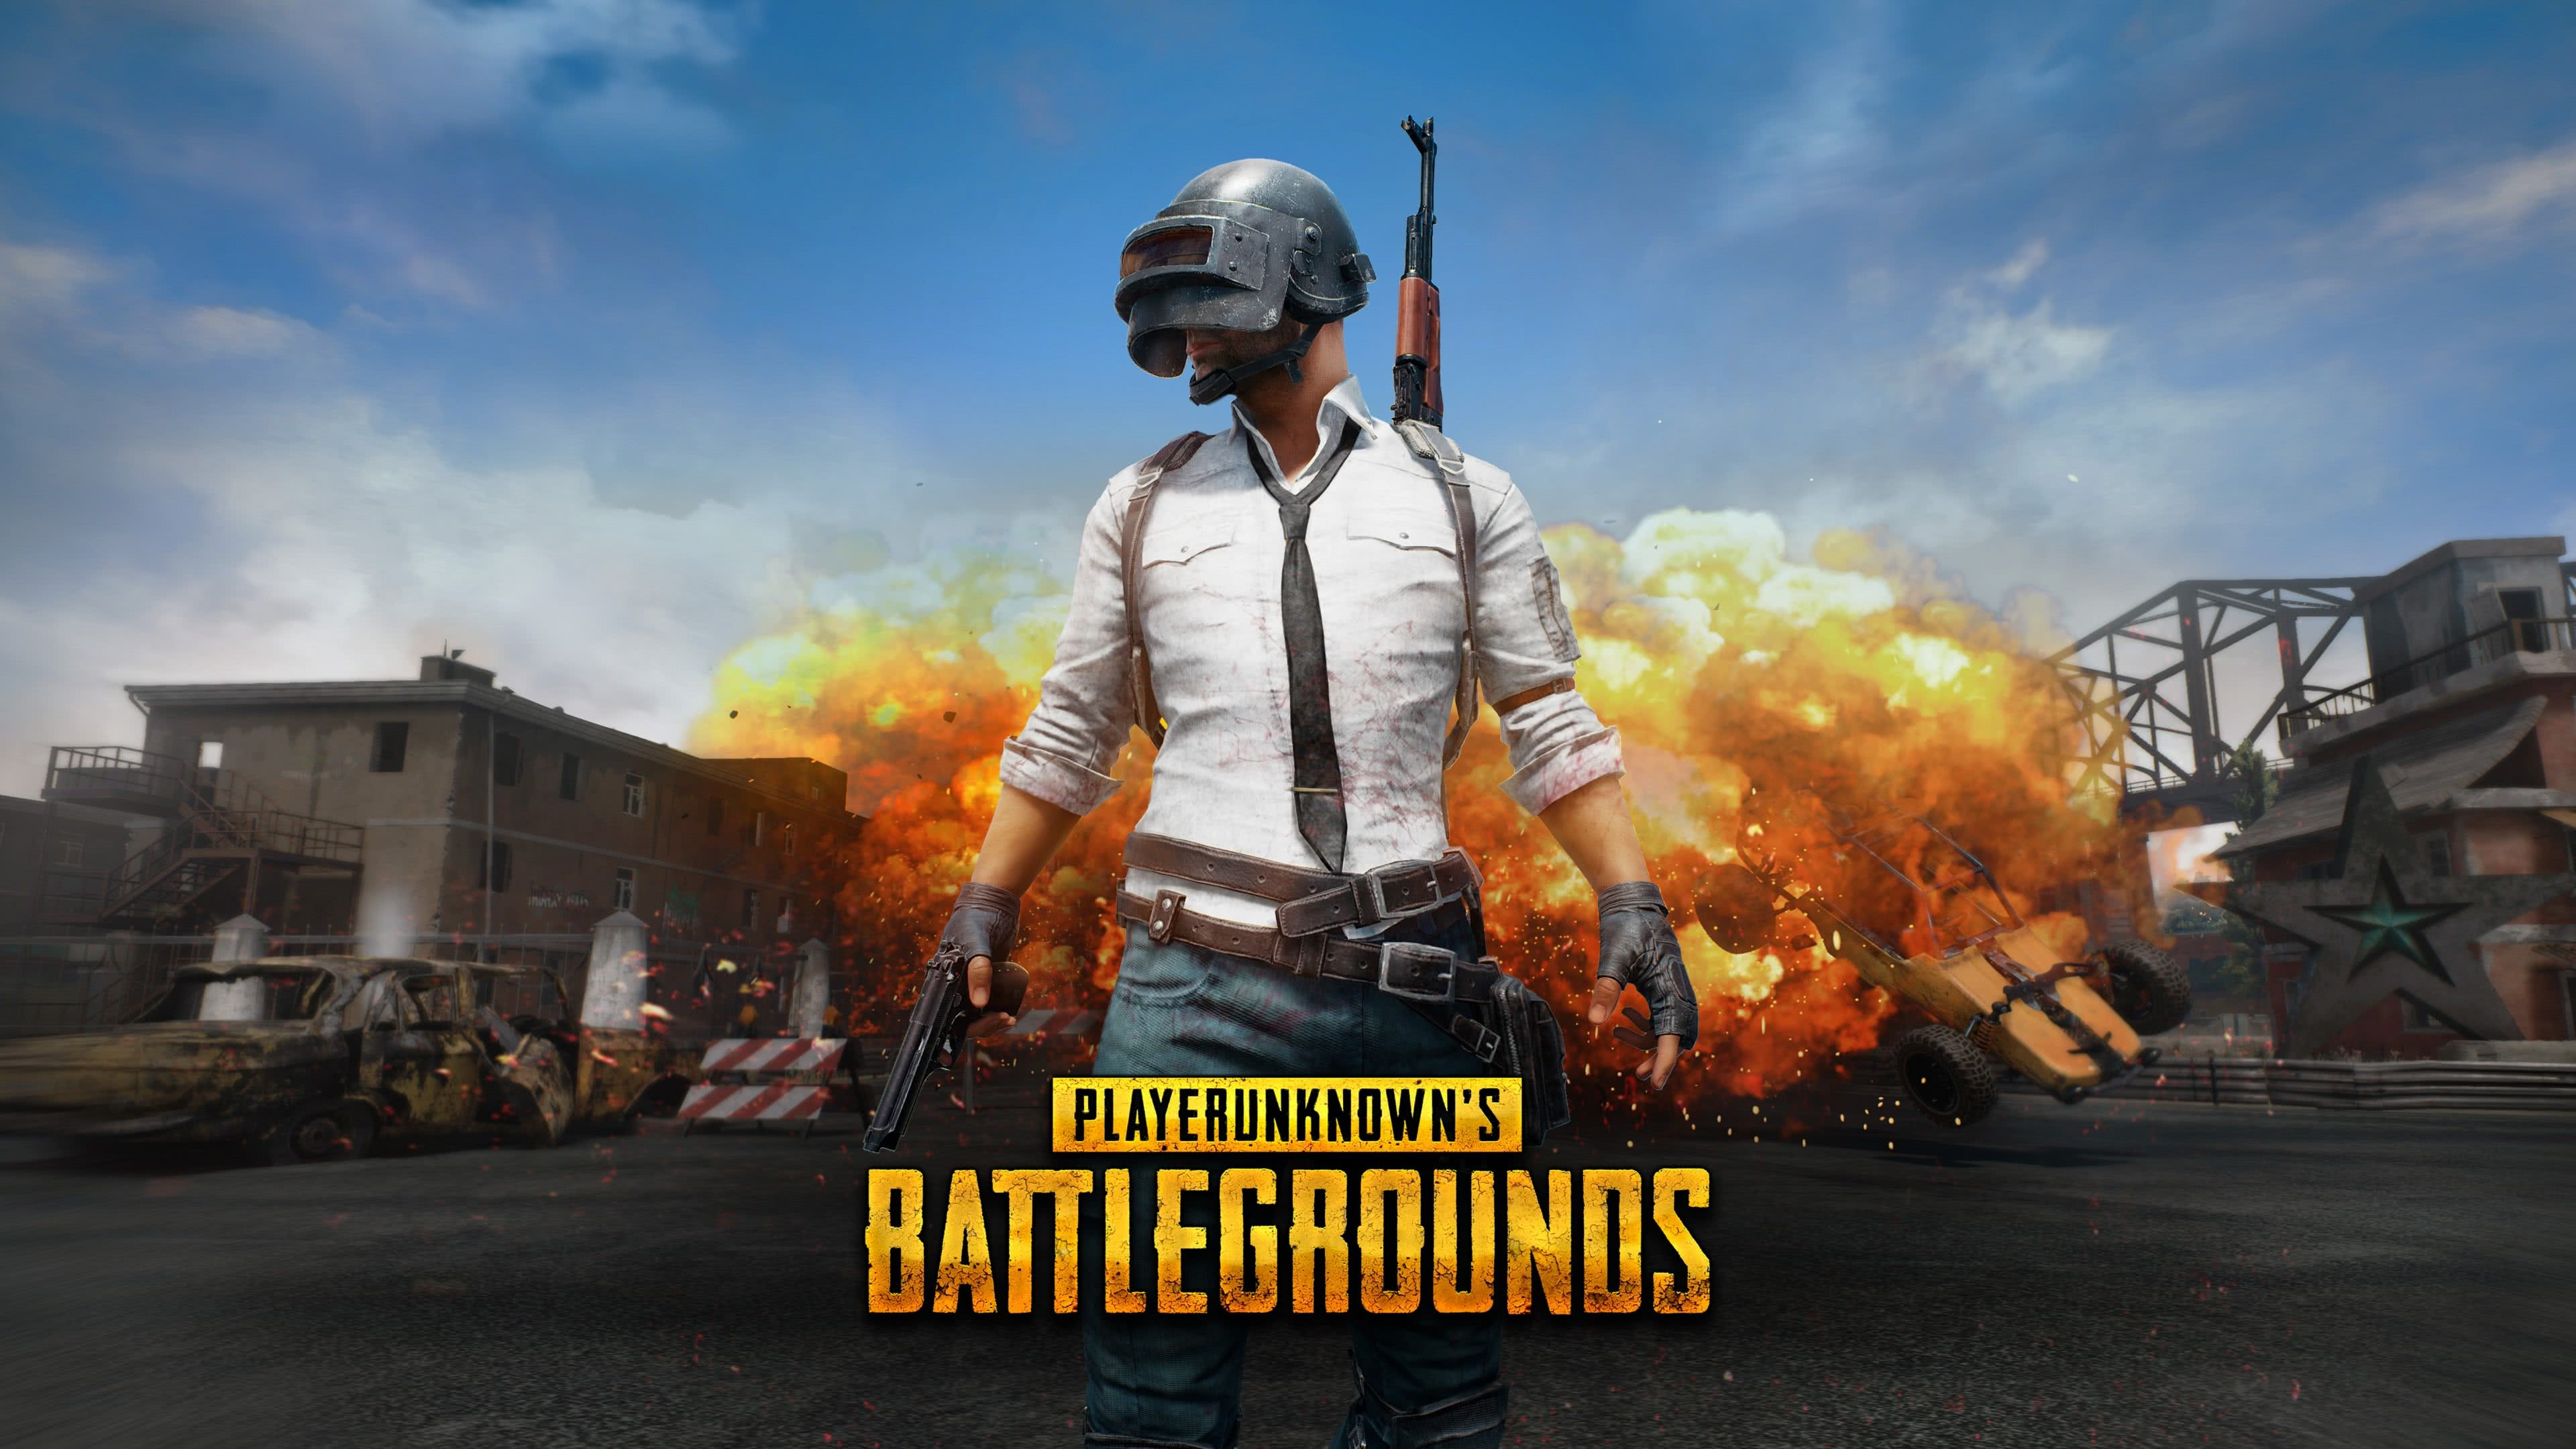 wp3276758 pubg 4k wallpapers - Player Unknown's Battlegrounds (PUBG) 4K - Pubg wallpaper phone, pubg wallpaper iphone, pubg wallpaper 1920x1080 hd, pubg hd wallpapers, pubg 4k wallpapers, Player Unknown's Battlegrounds 4k wallpapers